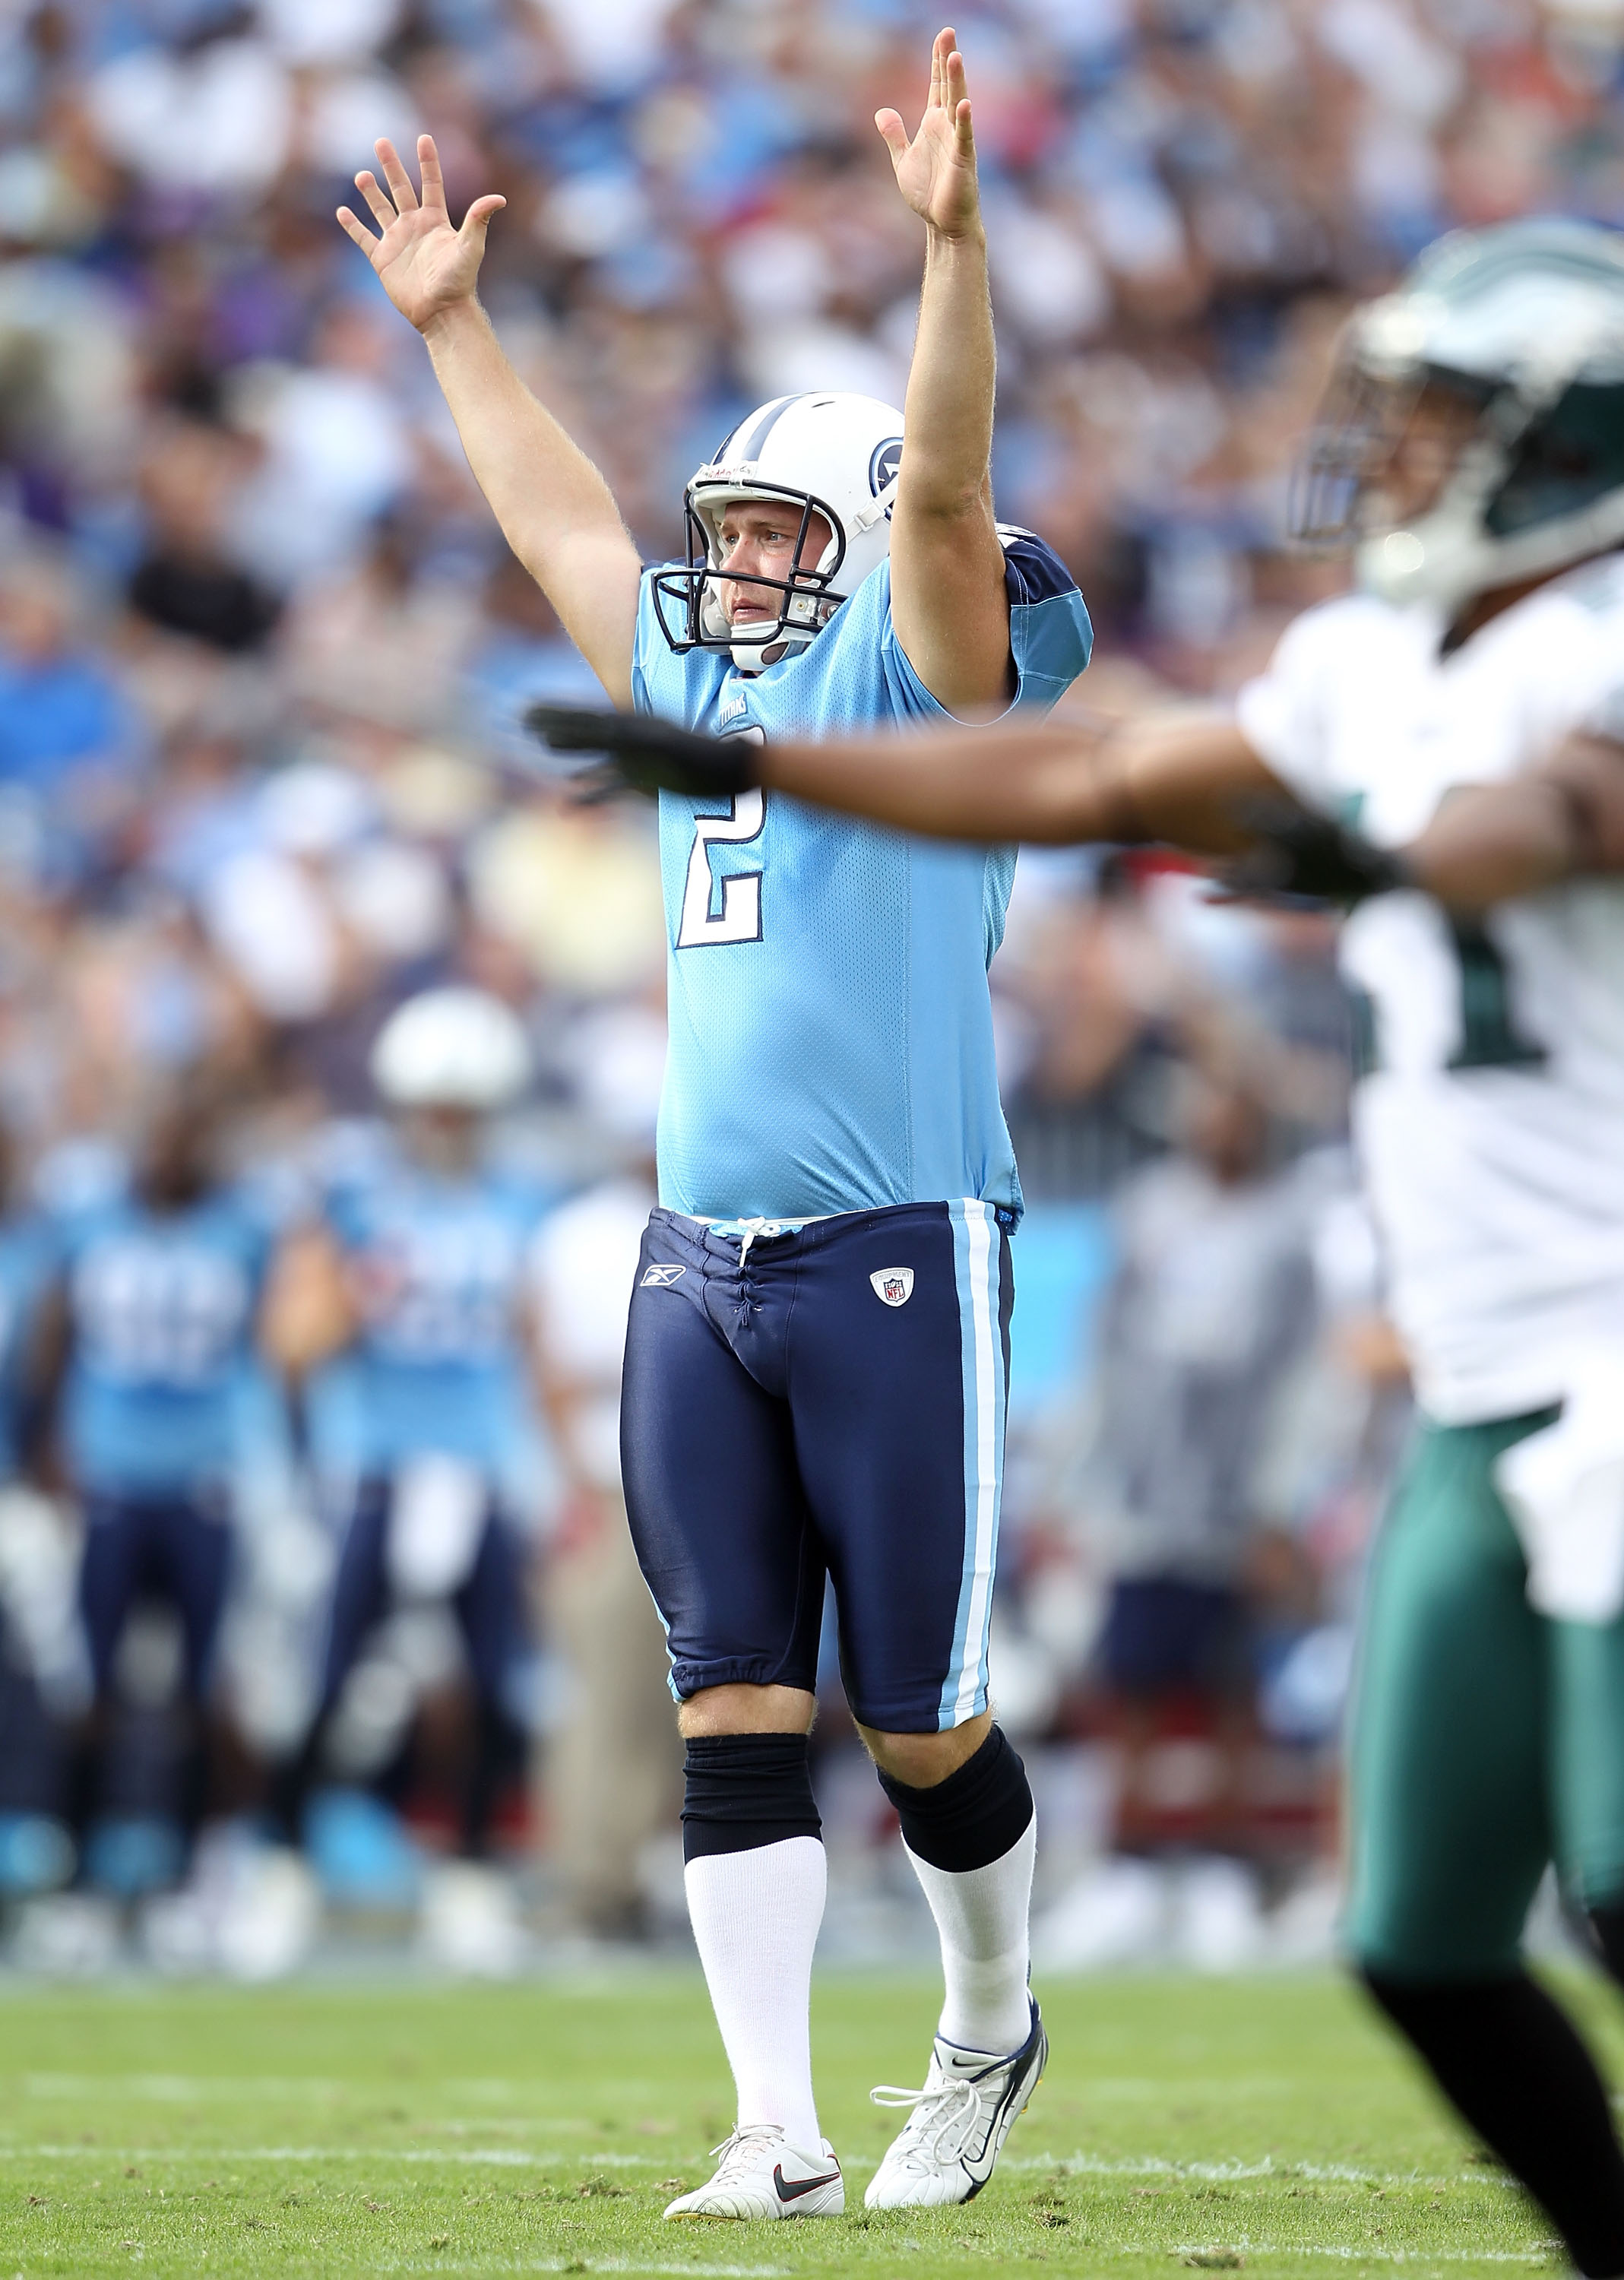 NASHVILLE, TN - OCTOBER 24:  Rob Bironas #2 of the Tennessee Titans  celebrates a kicking a field goal during the NFL game against the Philadelphia Eagles at LP Field on October 24, 2010 in Nashville, Tennessee. The Titans won 37-19.  (Photo by Andy Lyons